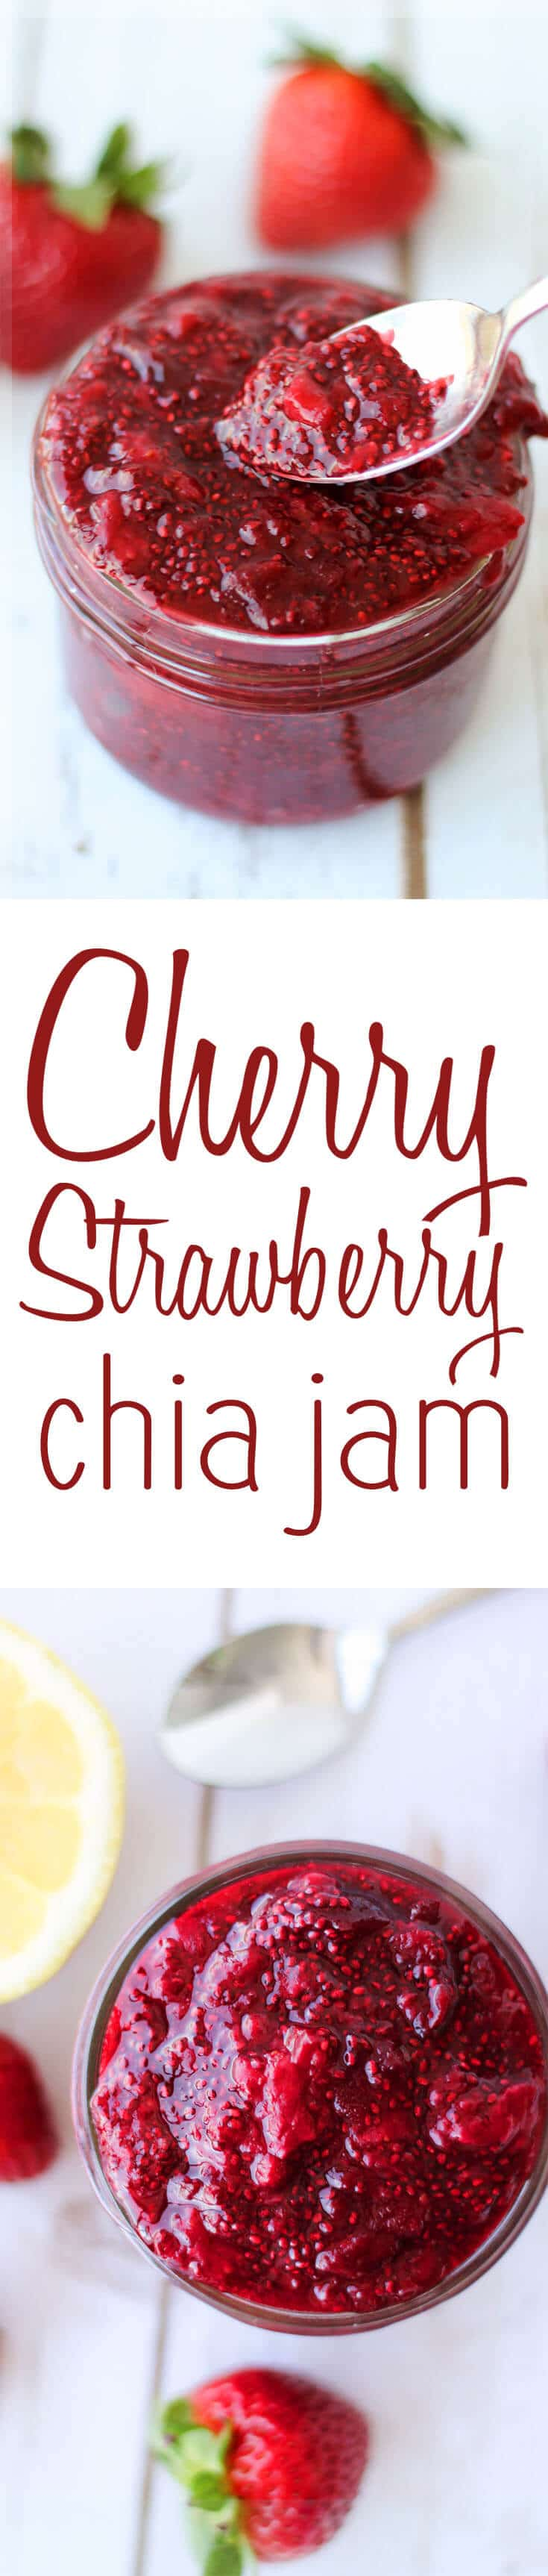 Start your day with my low sugar, cherry strawberry chia jam #diy #healthyrecipes #easyrecipes #chiajam #lowsugar #